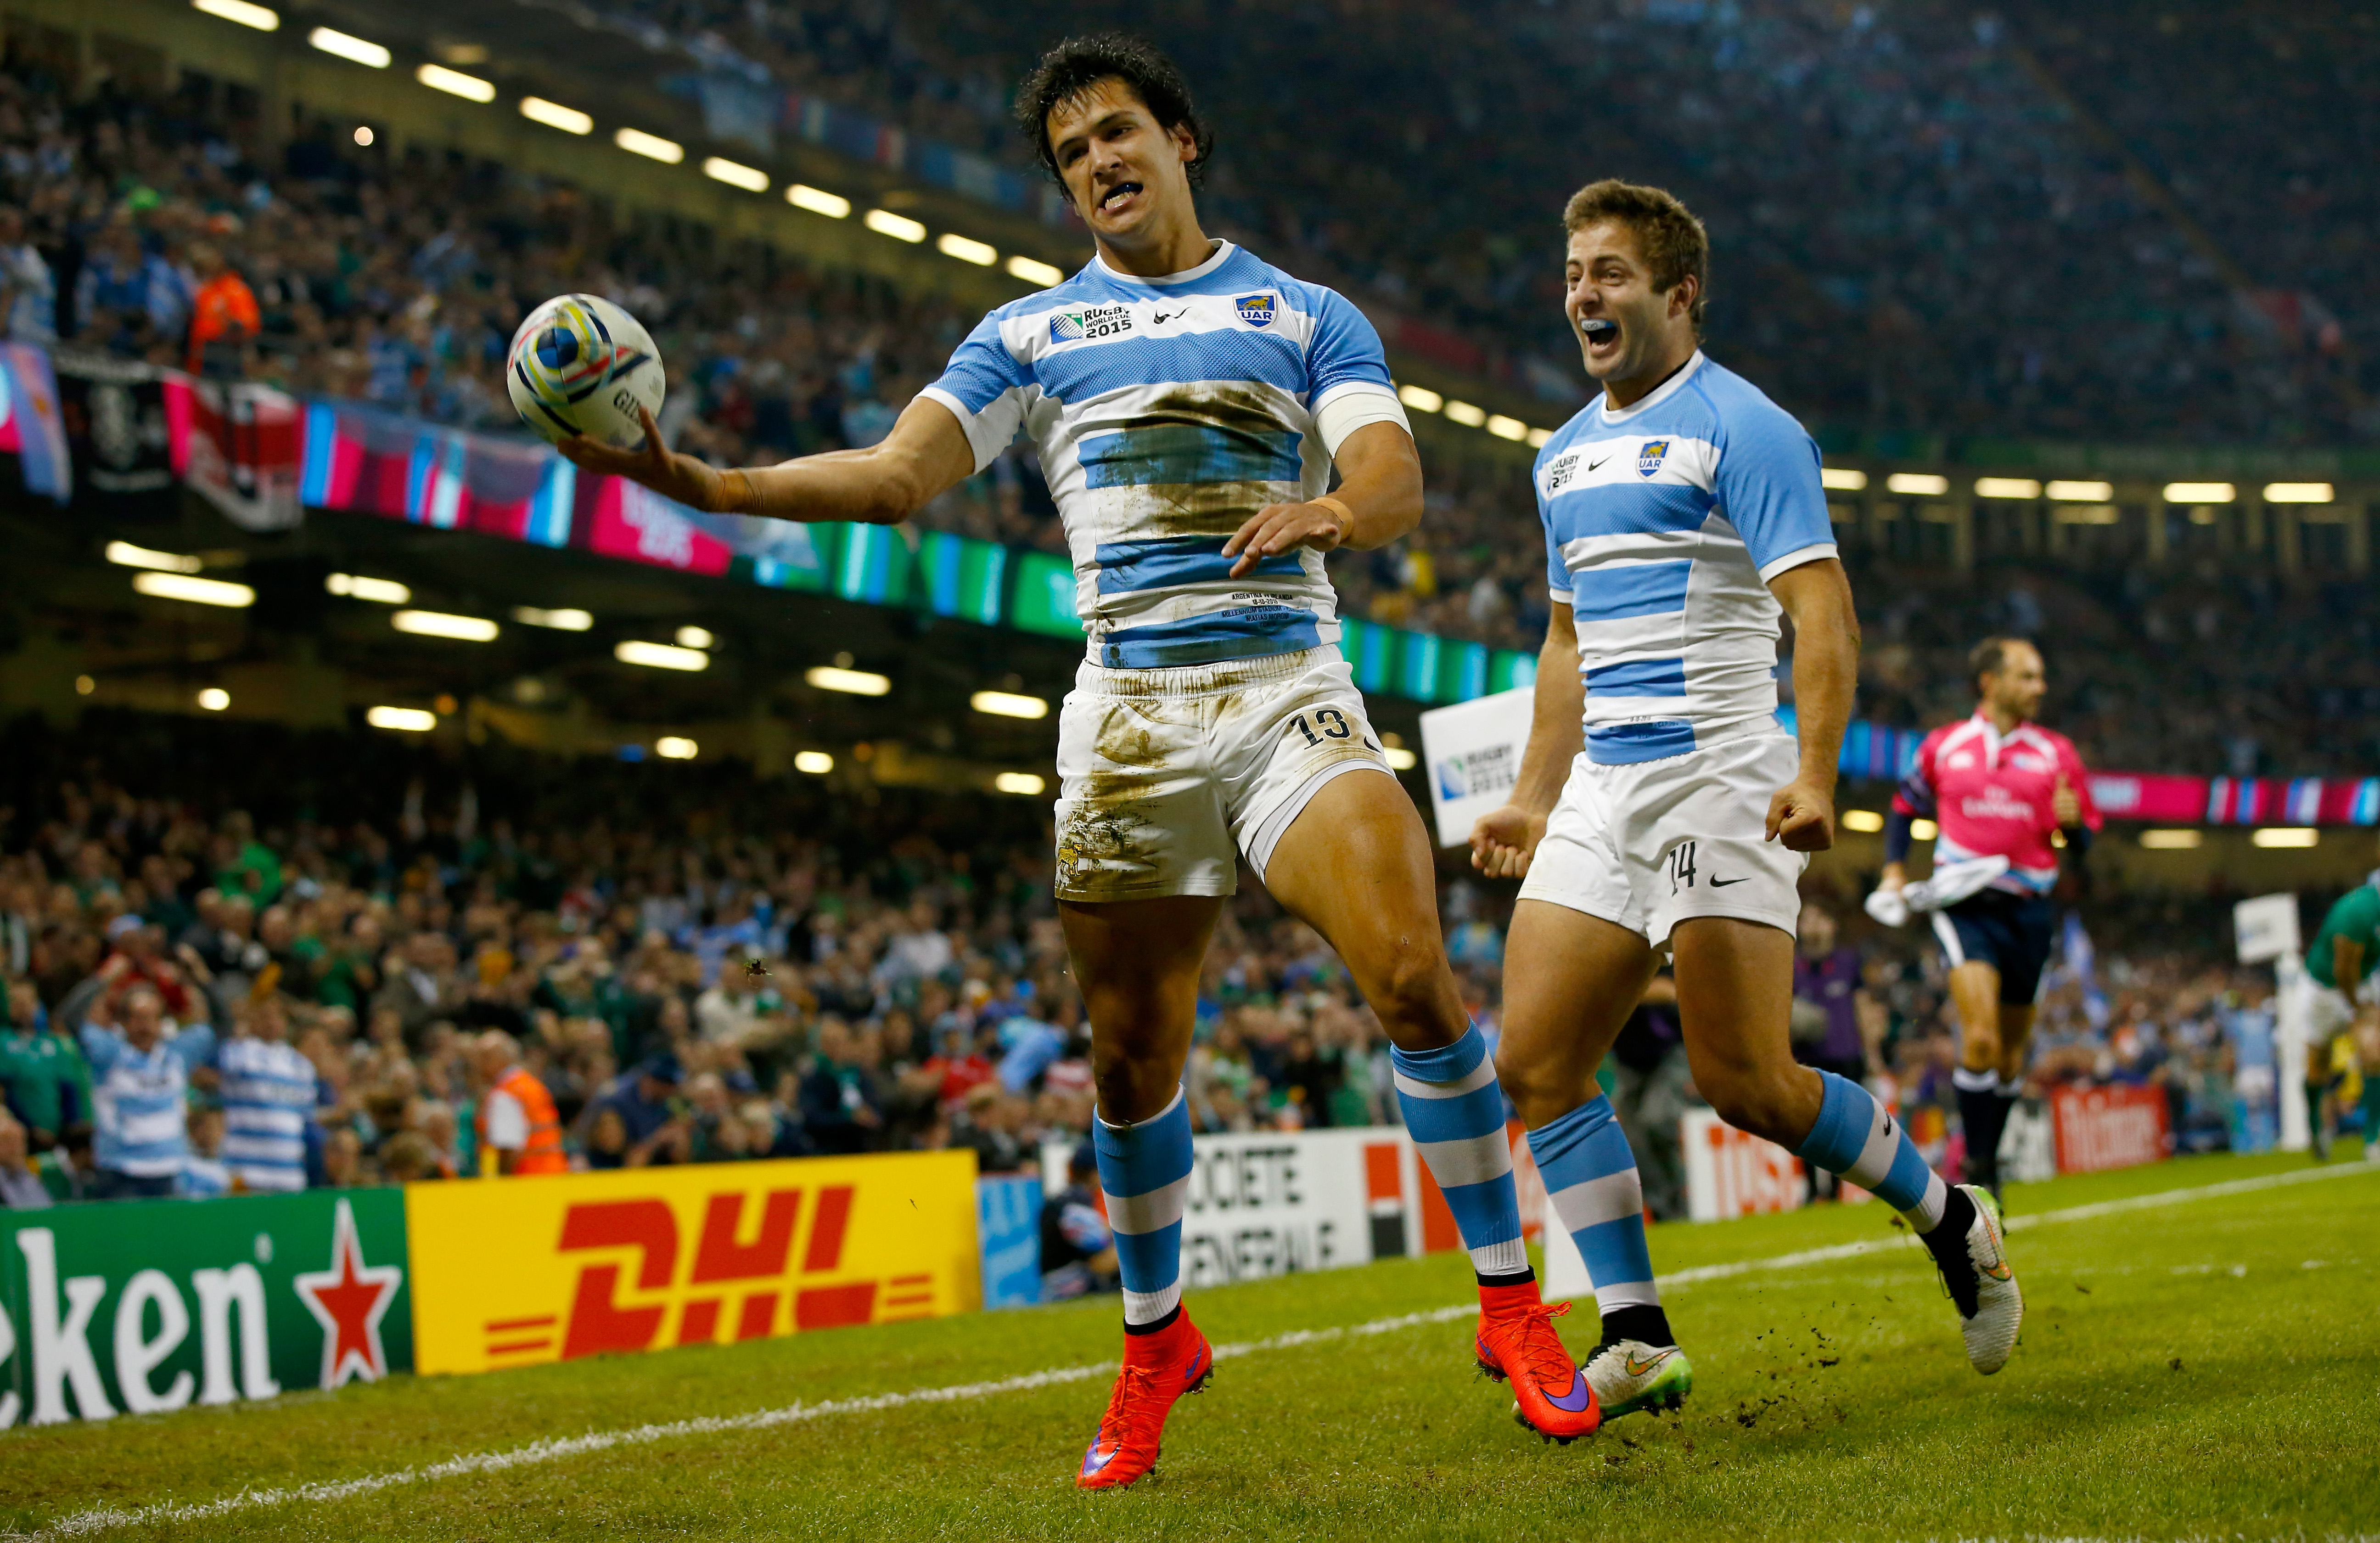 CARDIFF, WALES - OCTOBER 18: Matias Moroni of Aargentina (l) celebrates after scoring the opening try during the 2015 Rugby World Cup Quarter Final match between Ireland and Argentina at Millennium Stadium on October 18, 2015 in Cardiff, United Kingdom. (Photo by Stu Forster/Getty Images)